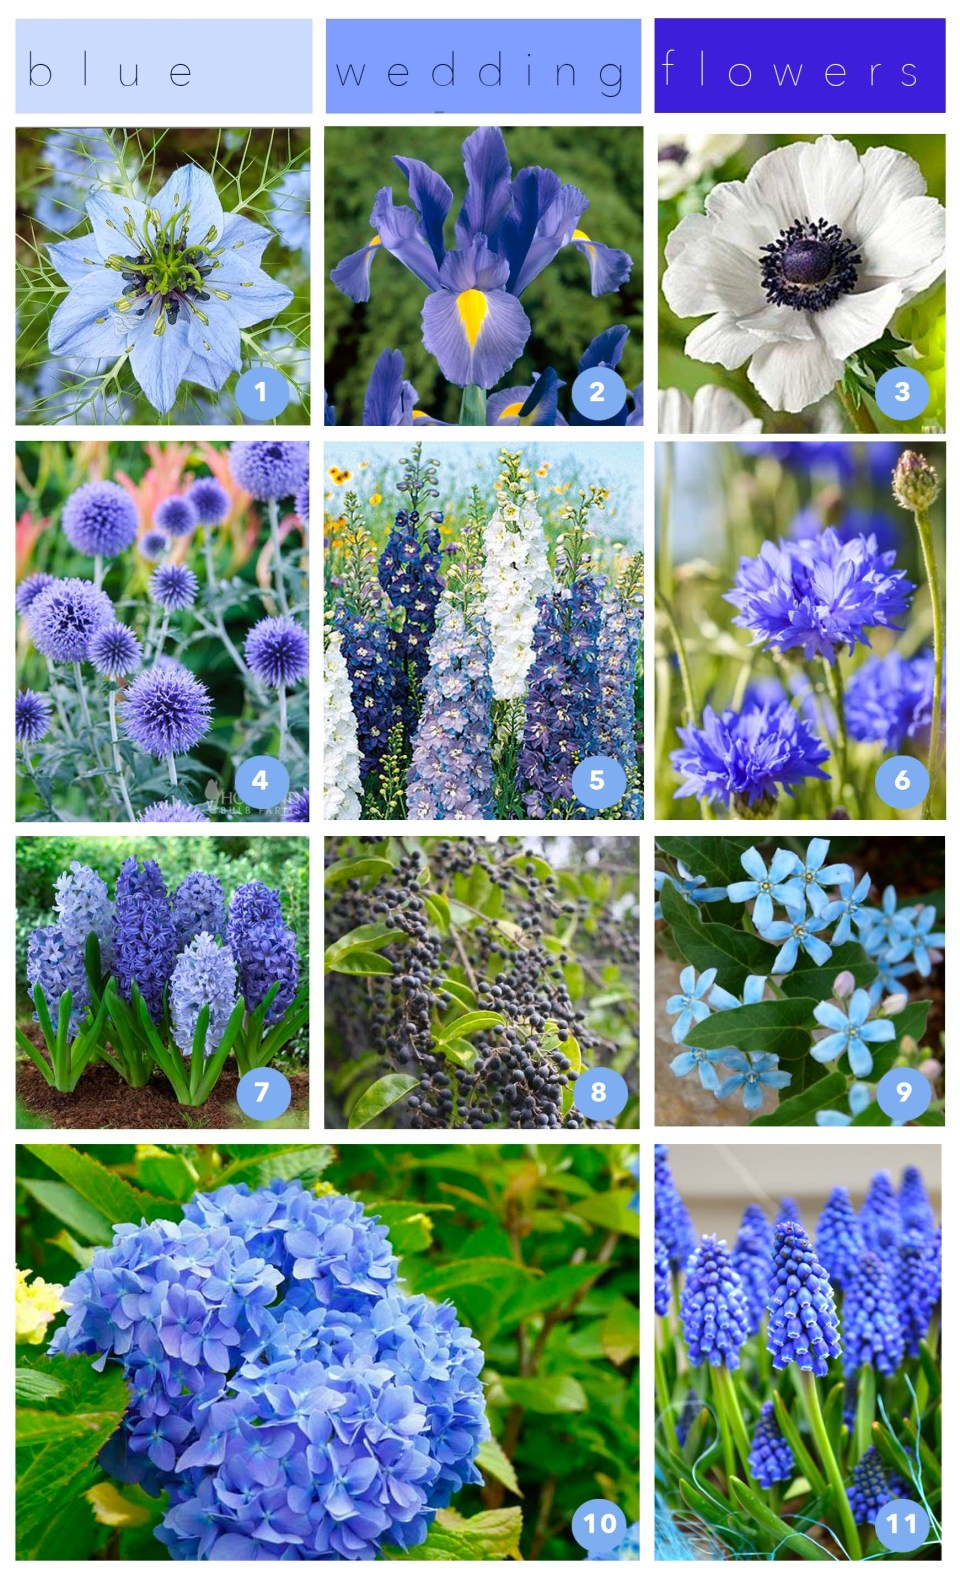 Blue Flowers - Blue flowers for weddings - Blue Flowers for Bouquets